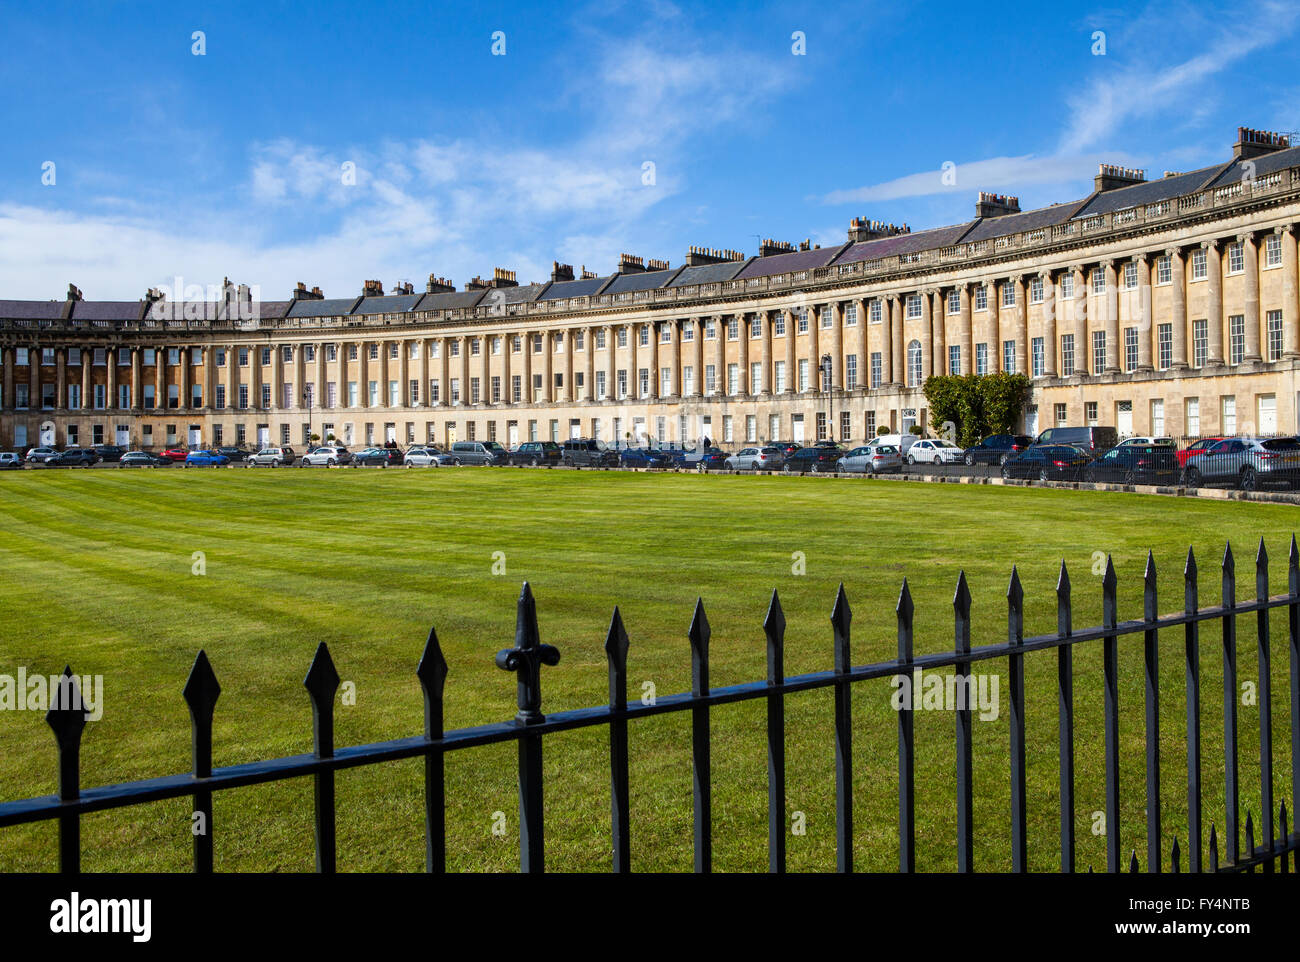 A view of the stunning Royal Crescent in Bath, Somerset. - Stock Image